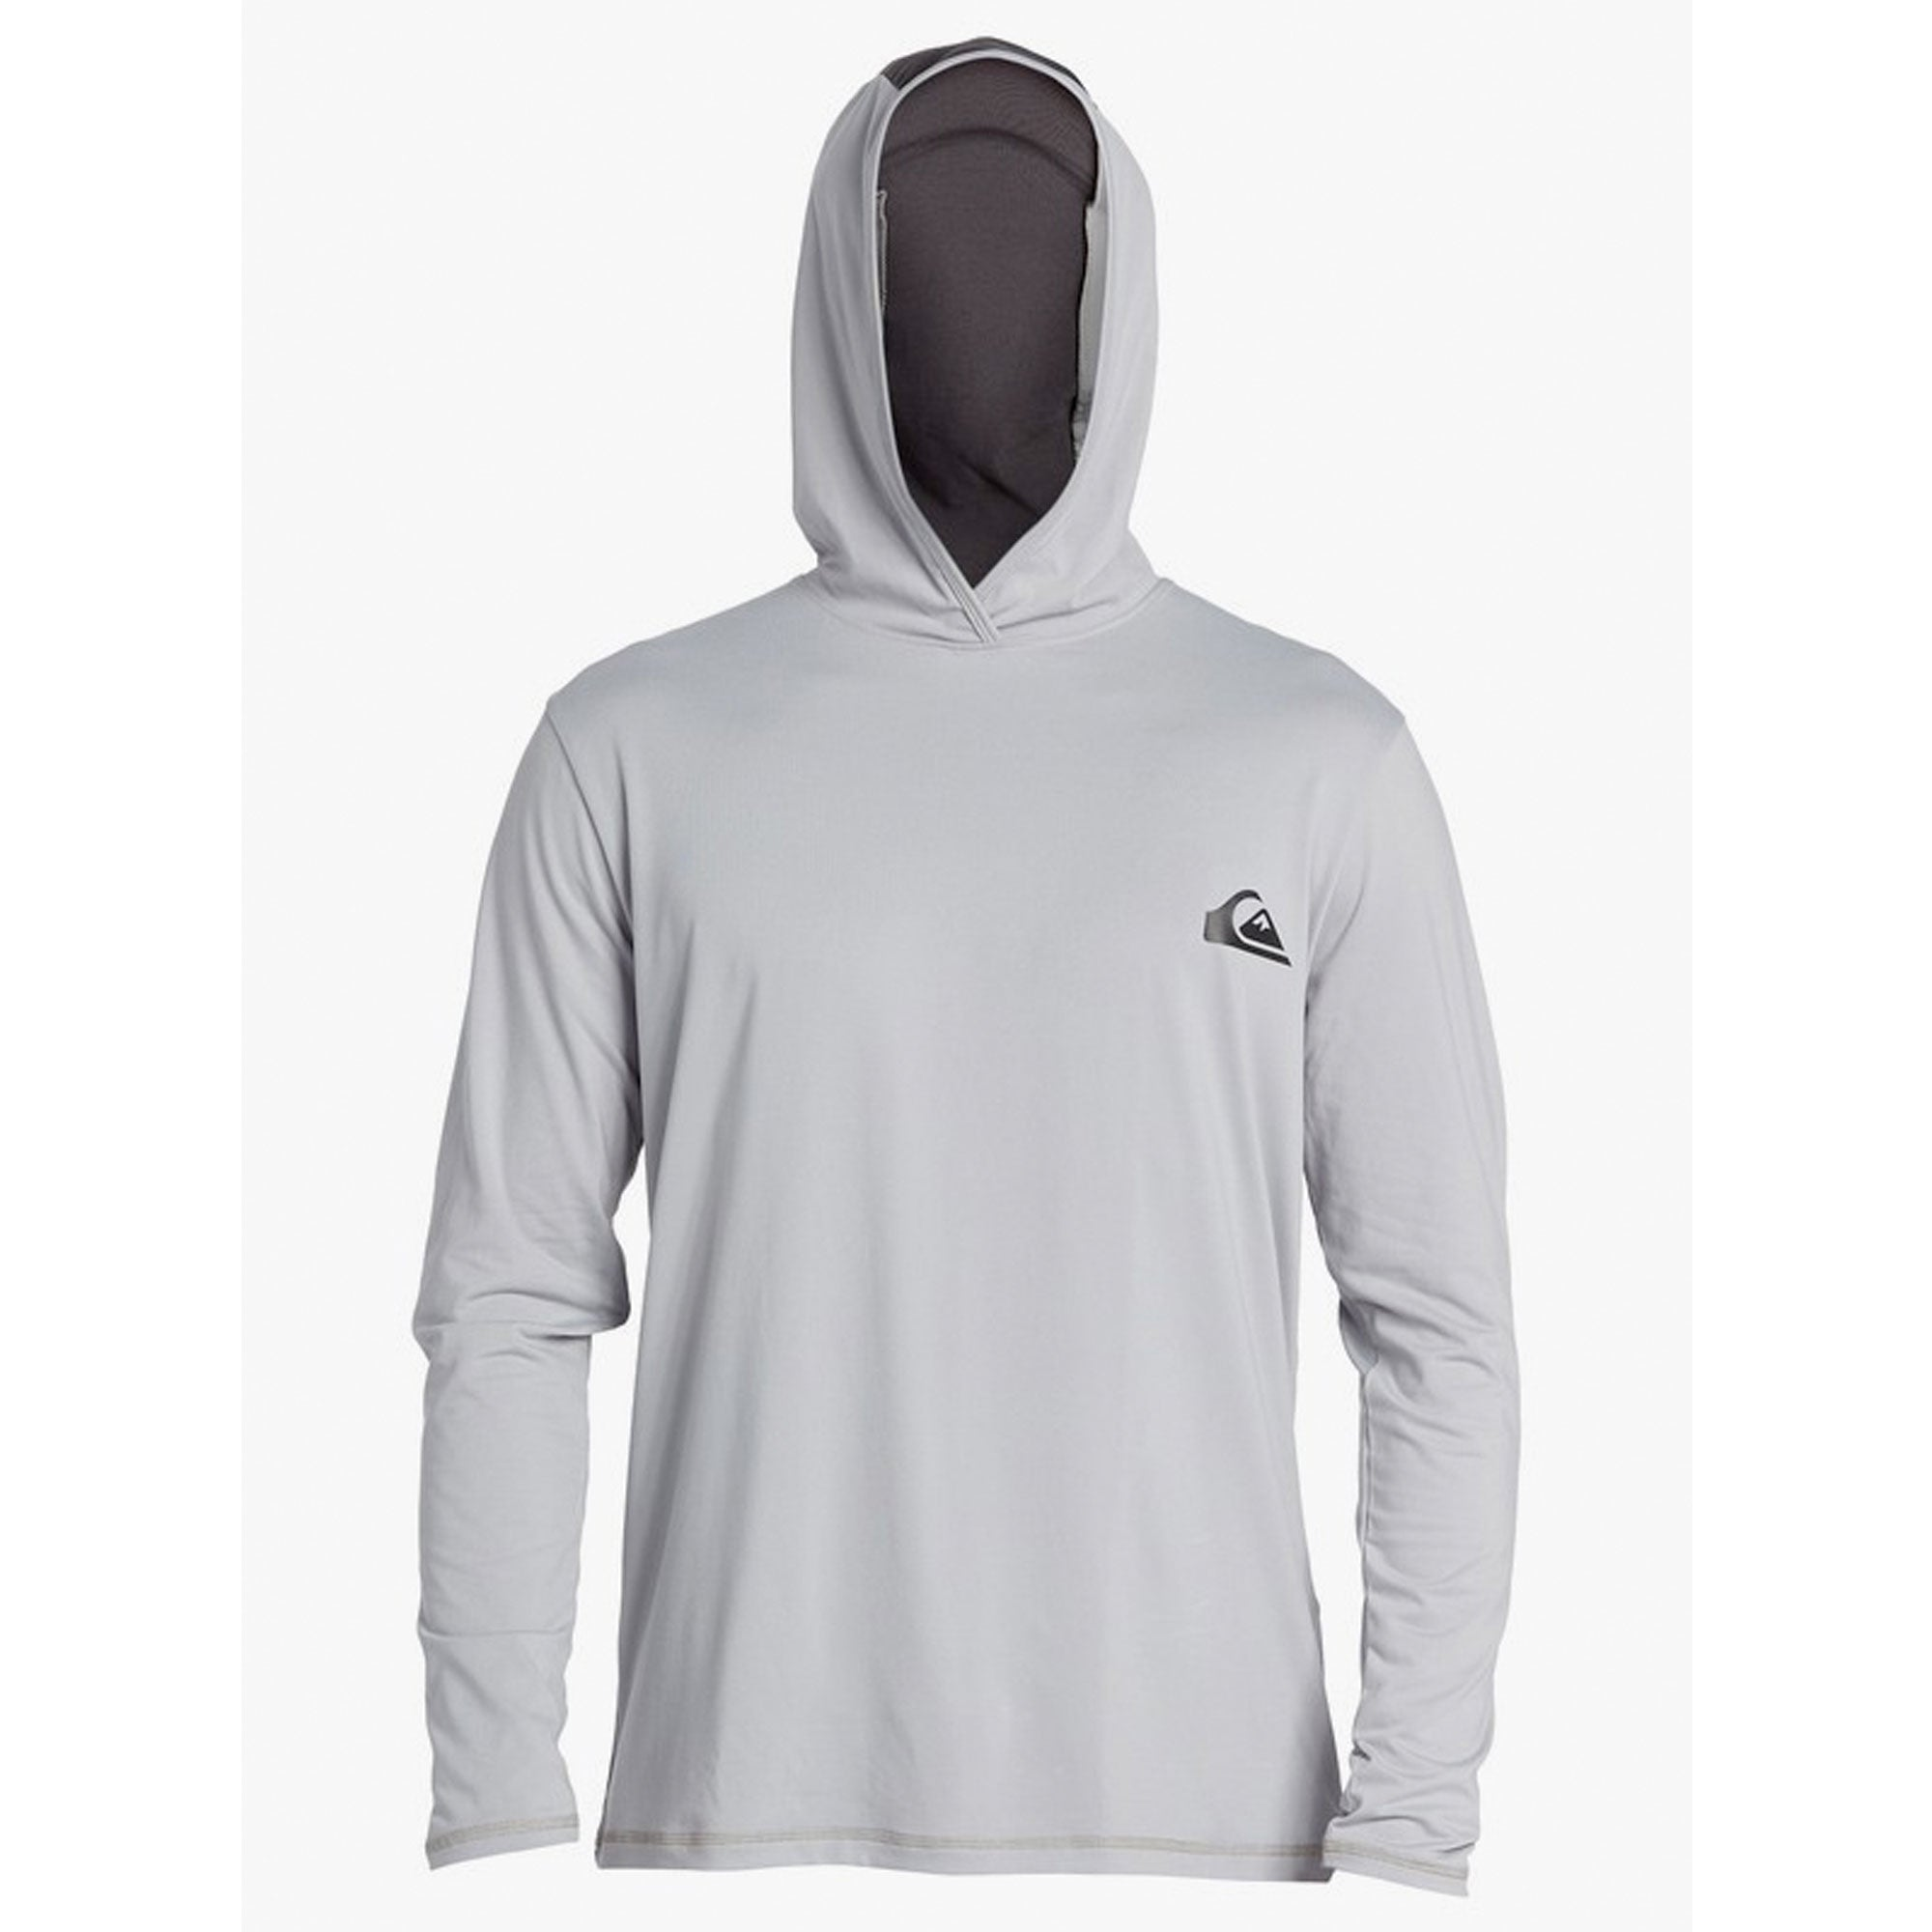 Quiksilver Dredge Hooded Men's UPF 50 L/S Rashguard